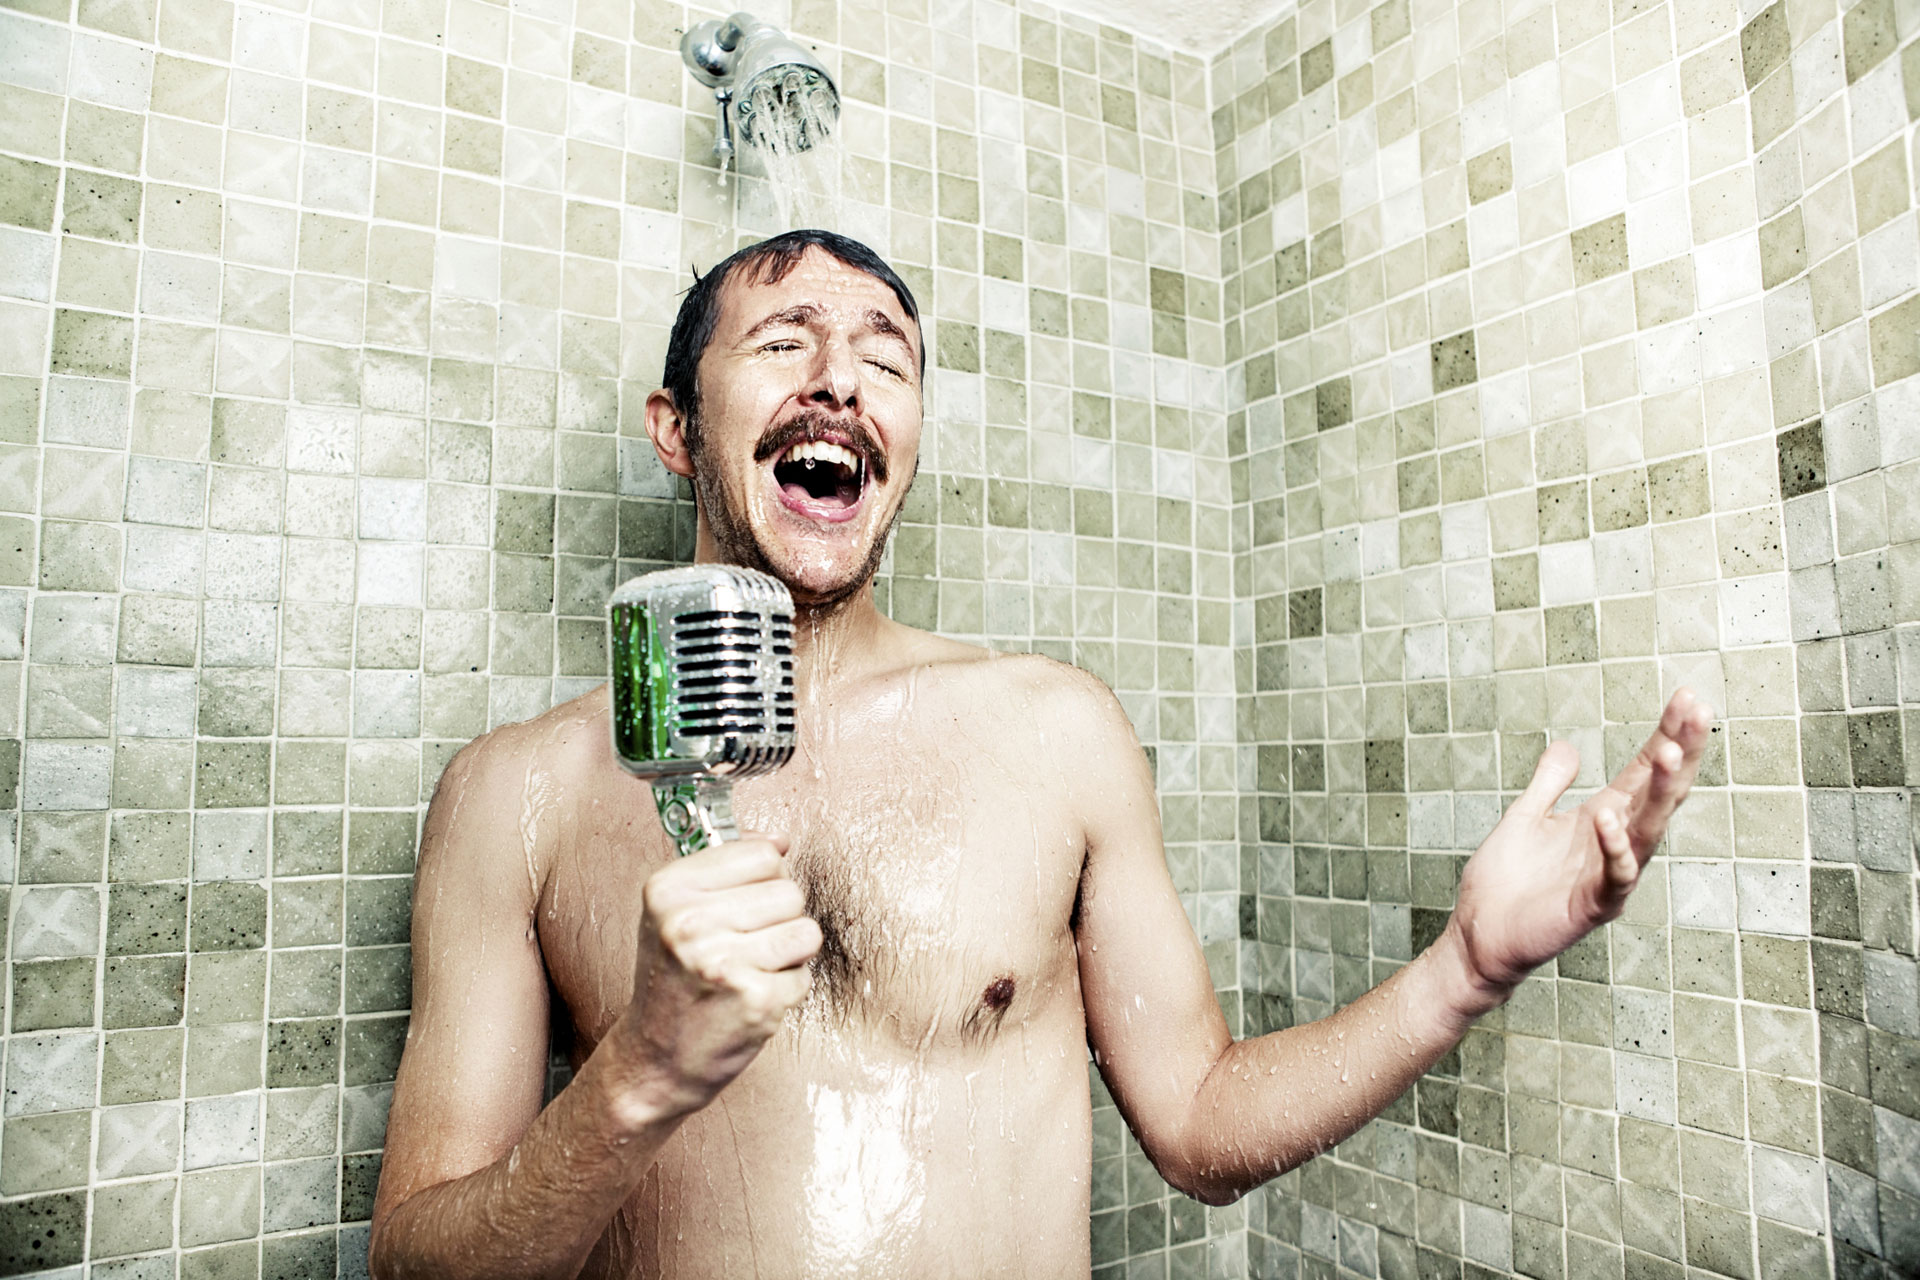 Man singing in shower